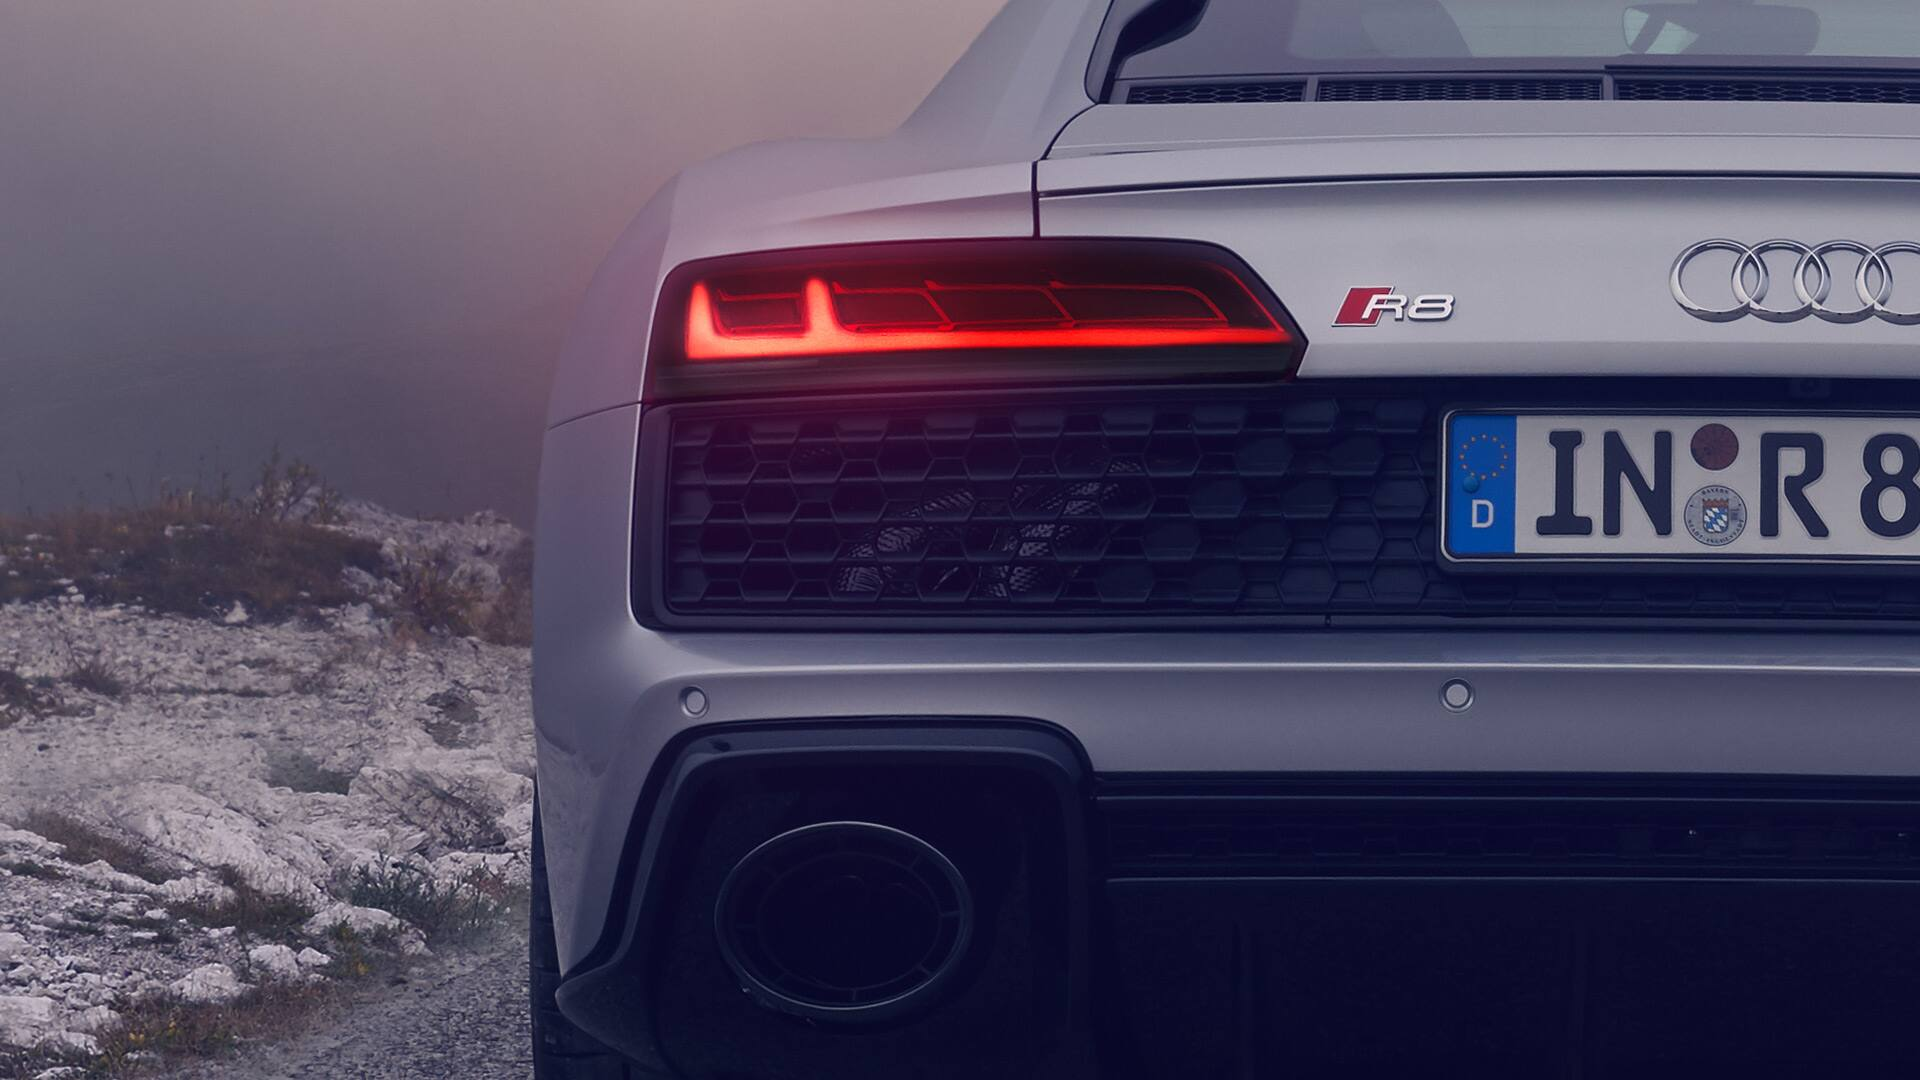 Rear light of an Audi R8 RWD